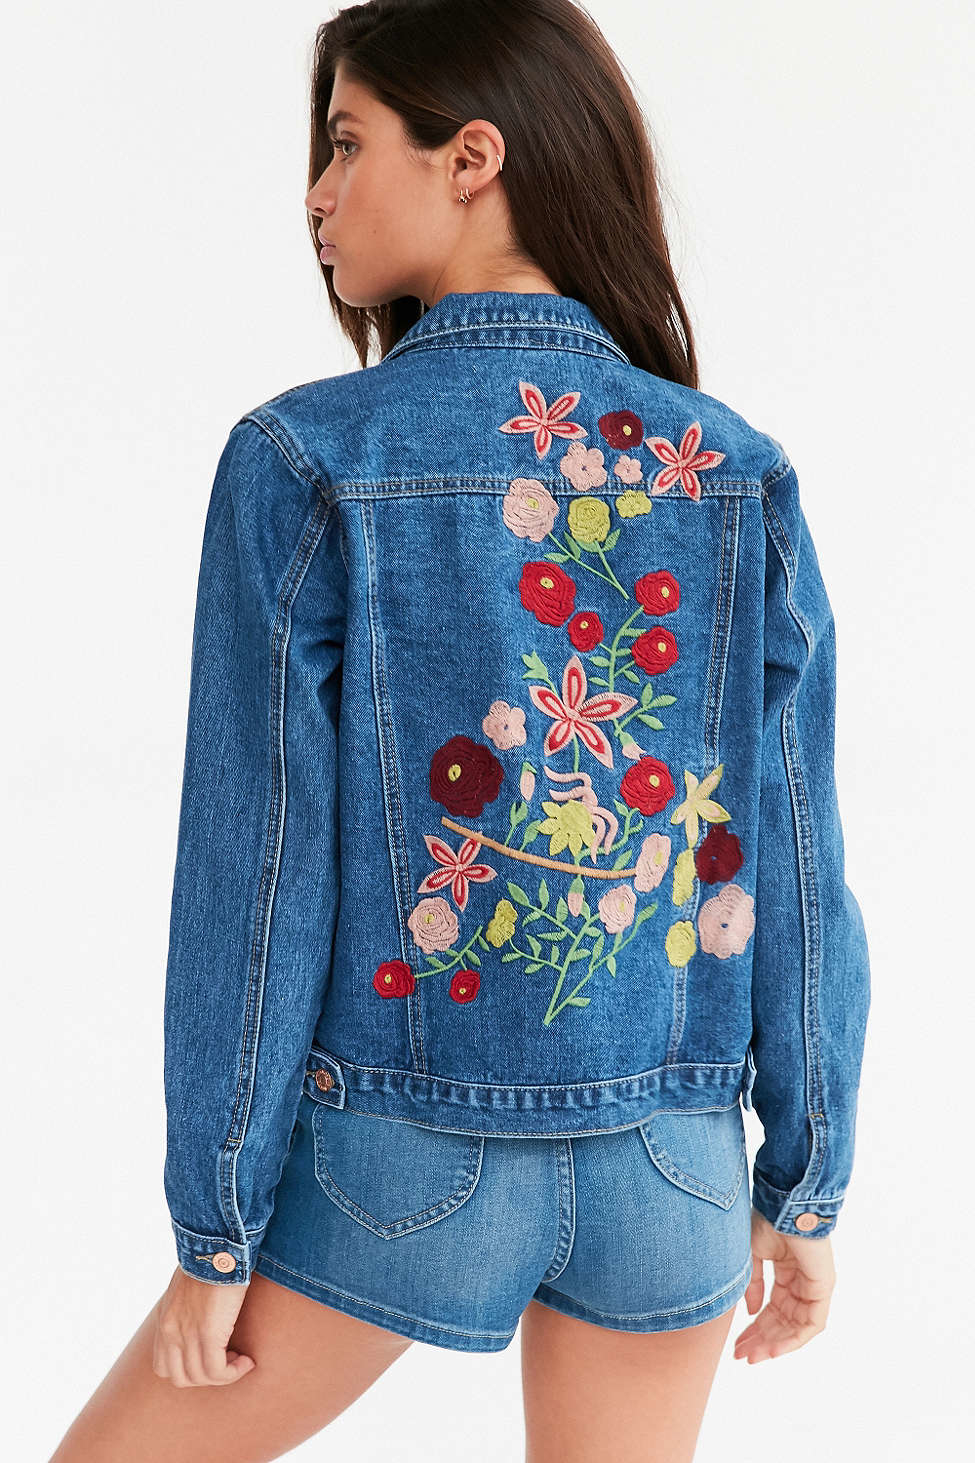 Kimchi Blue Woodstock Embroidered Denim Jacket In Blue | Lyst